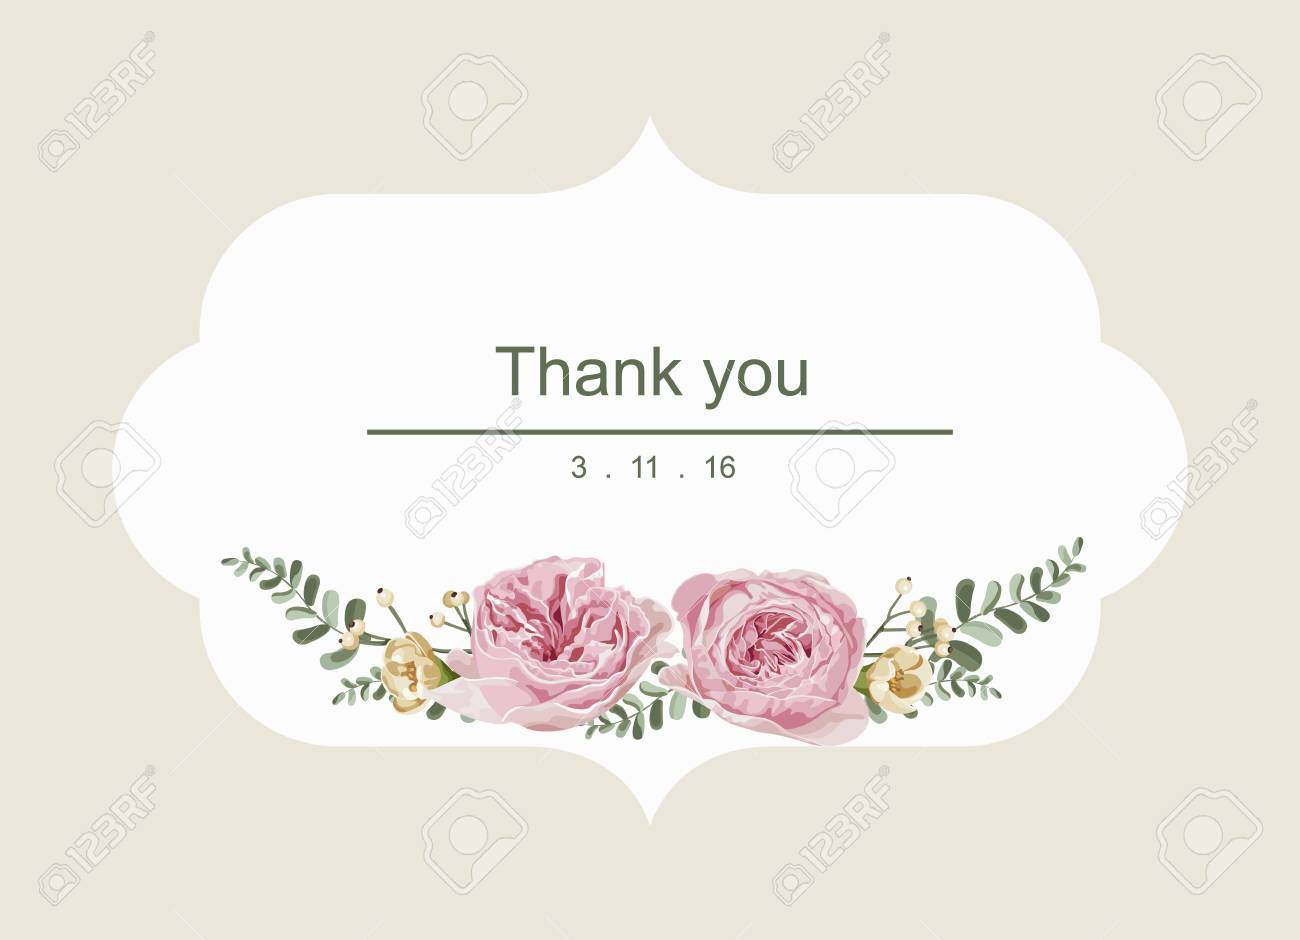 Romantic Card With Vintage Flowers And White Vintage Background